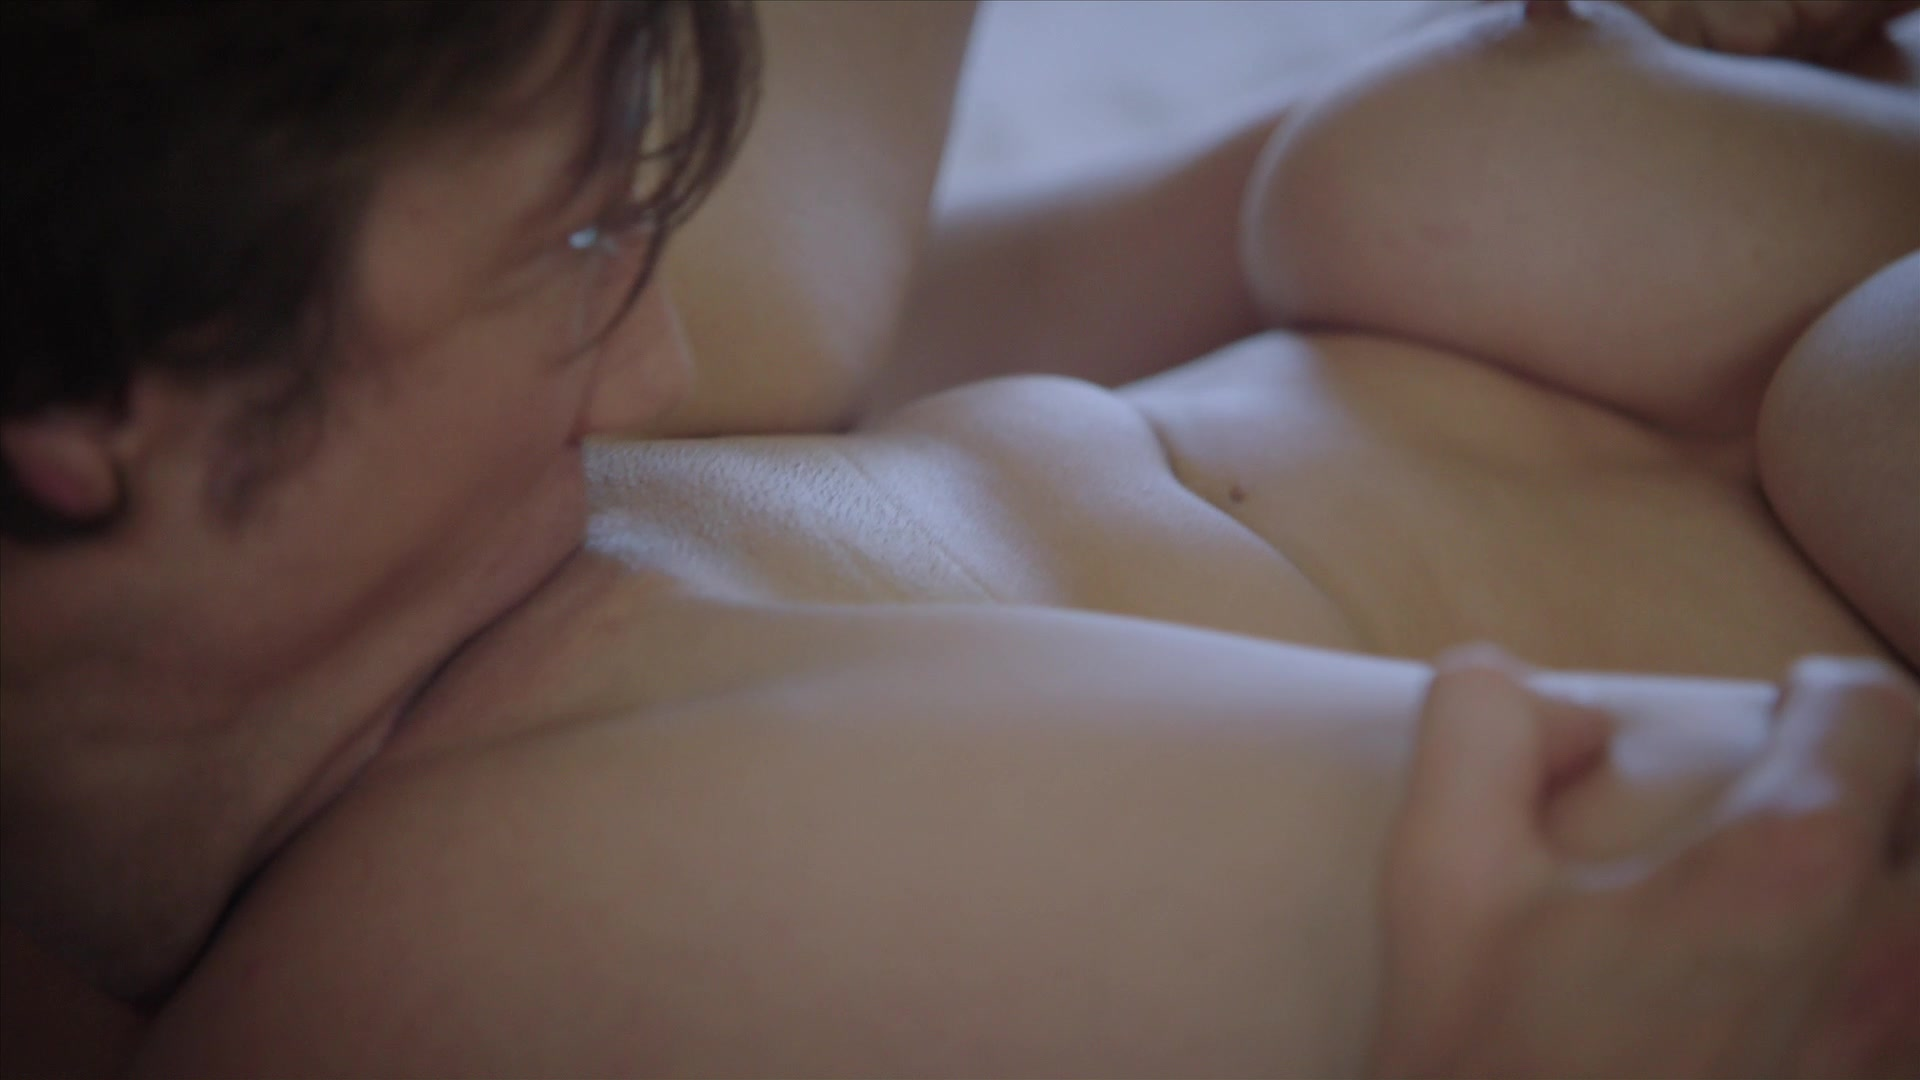 Scene with Kylie Page - image 13 out of 20